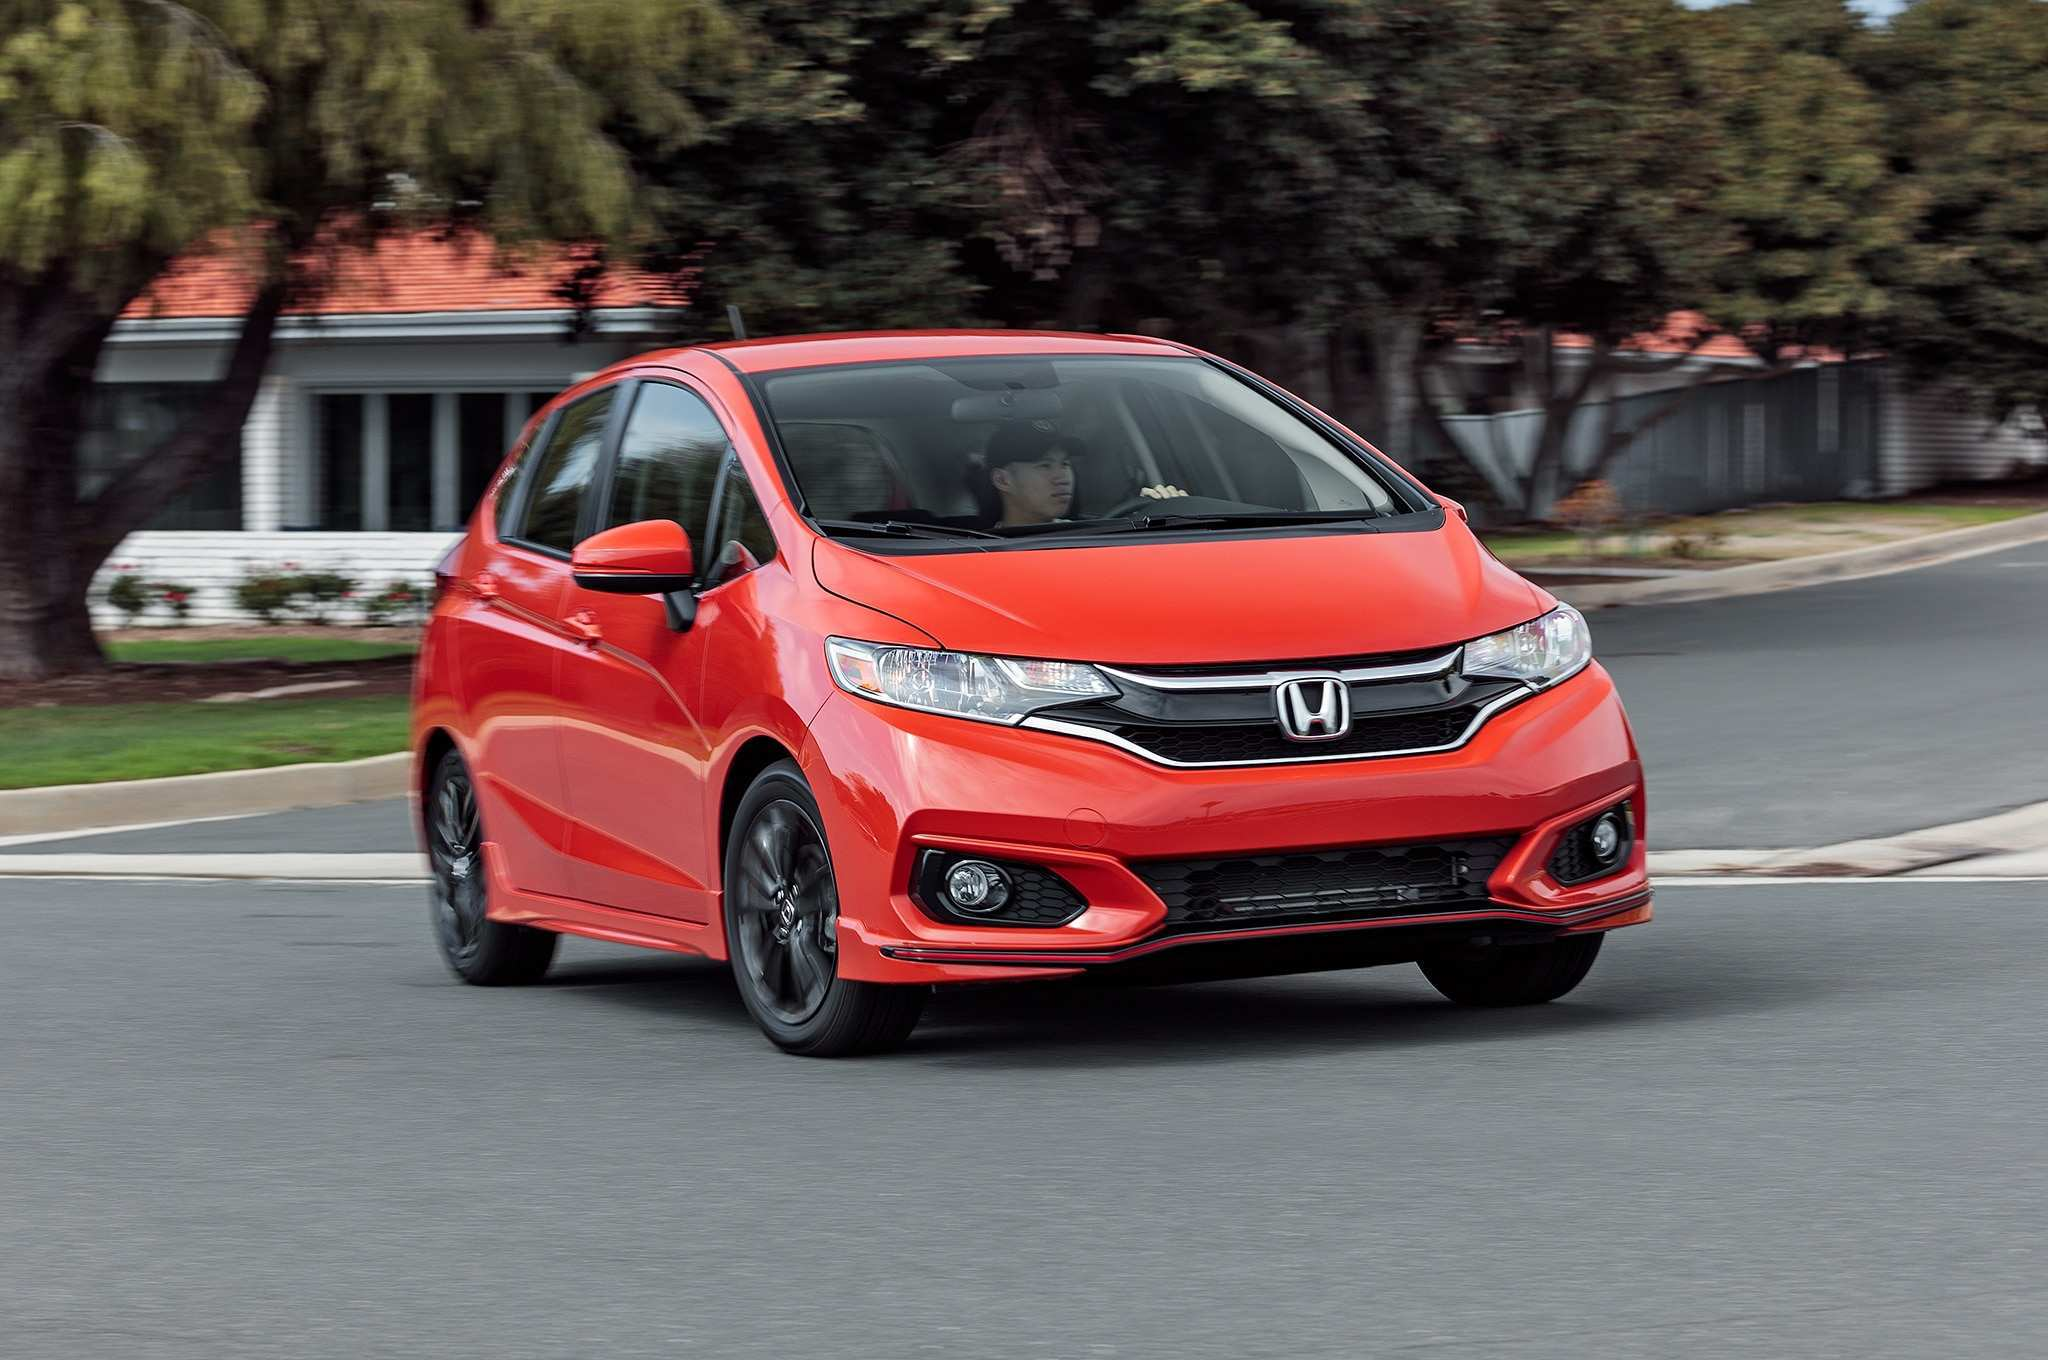 65 New Honda Fit Electric 2020 Picture